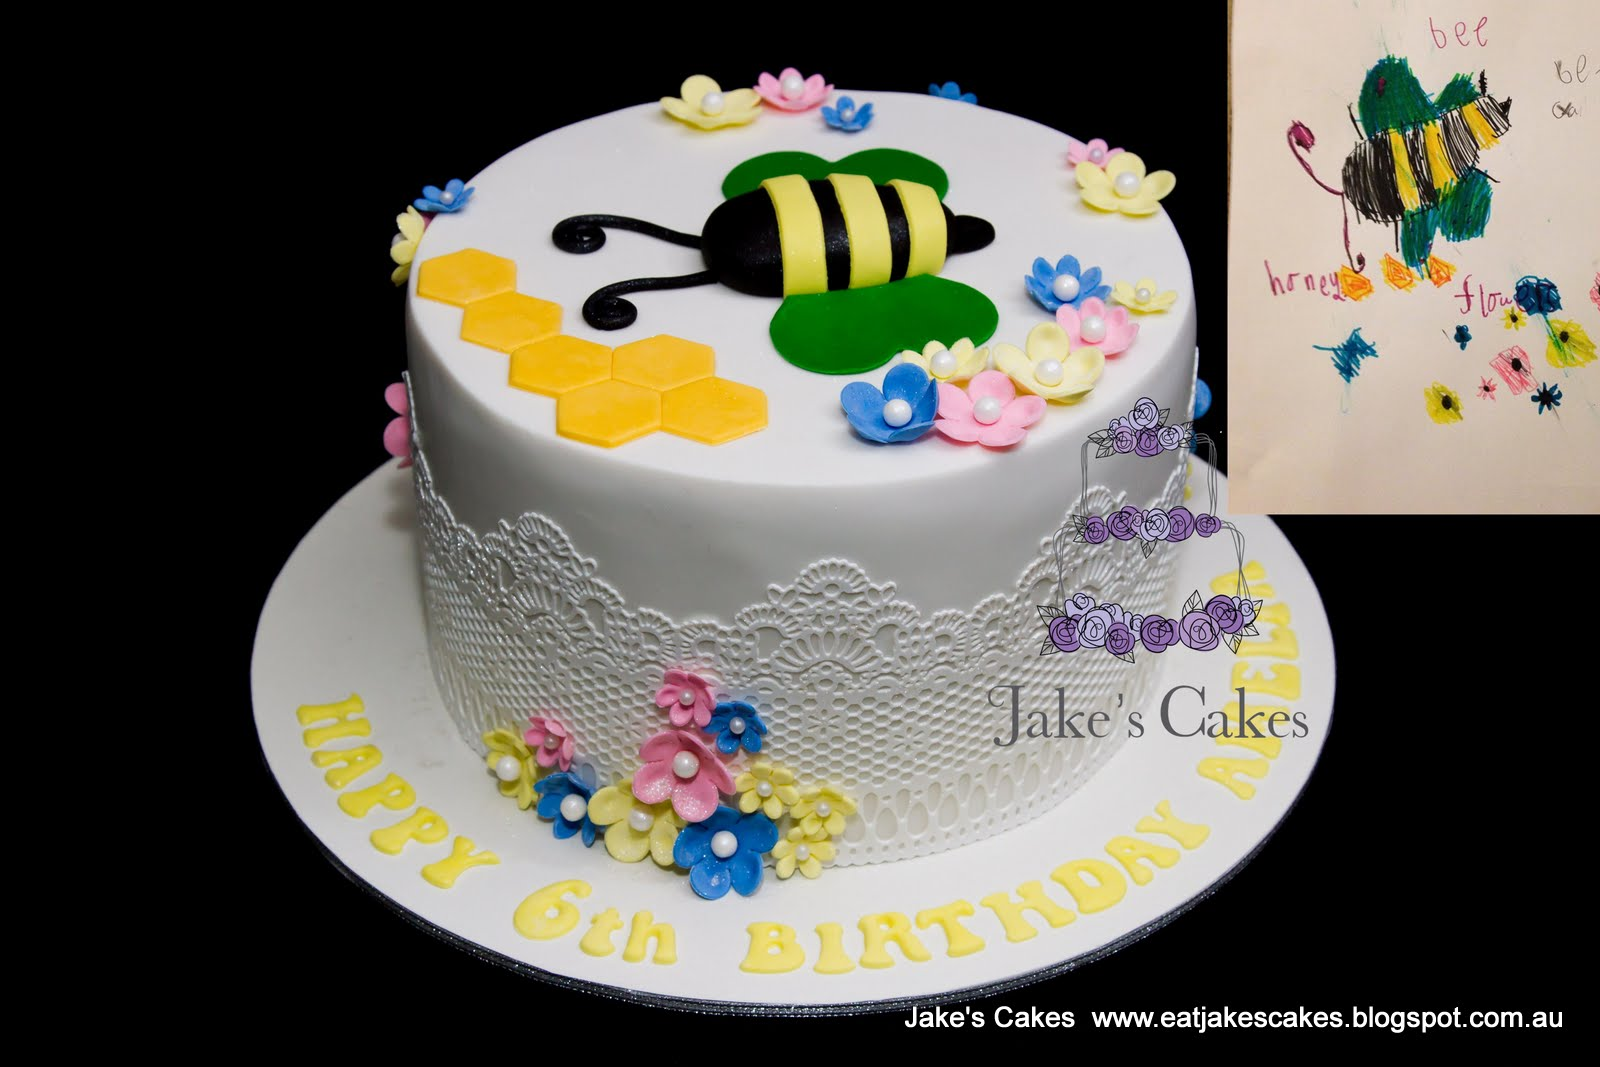 Amelias Bee Cake This Little Girl Drew A Beautiful Picture Of What She Would Like Her 6th Birthday To Be Is The Jakes Cakes Sugar Version